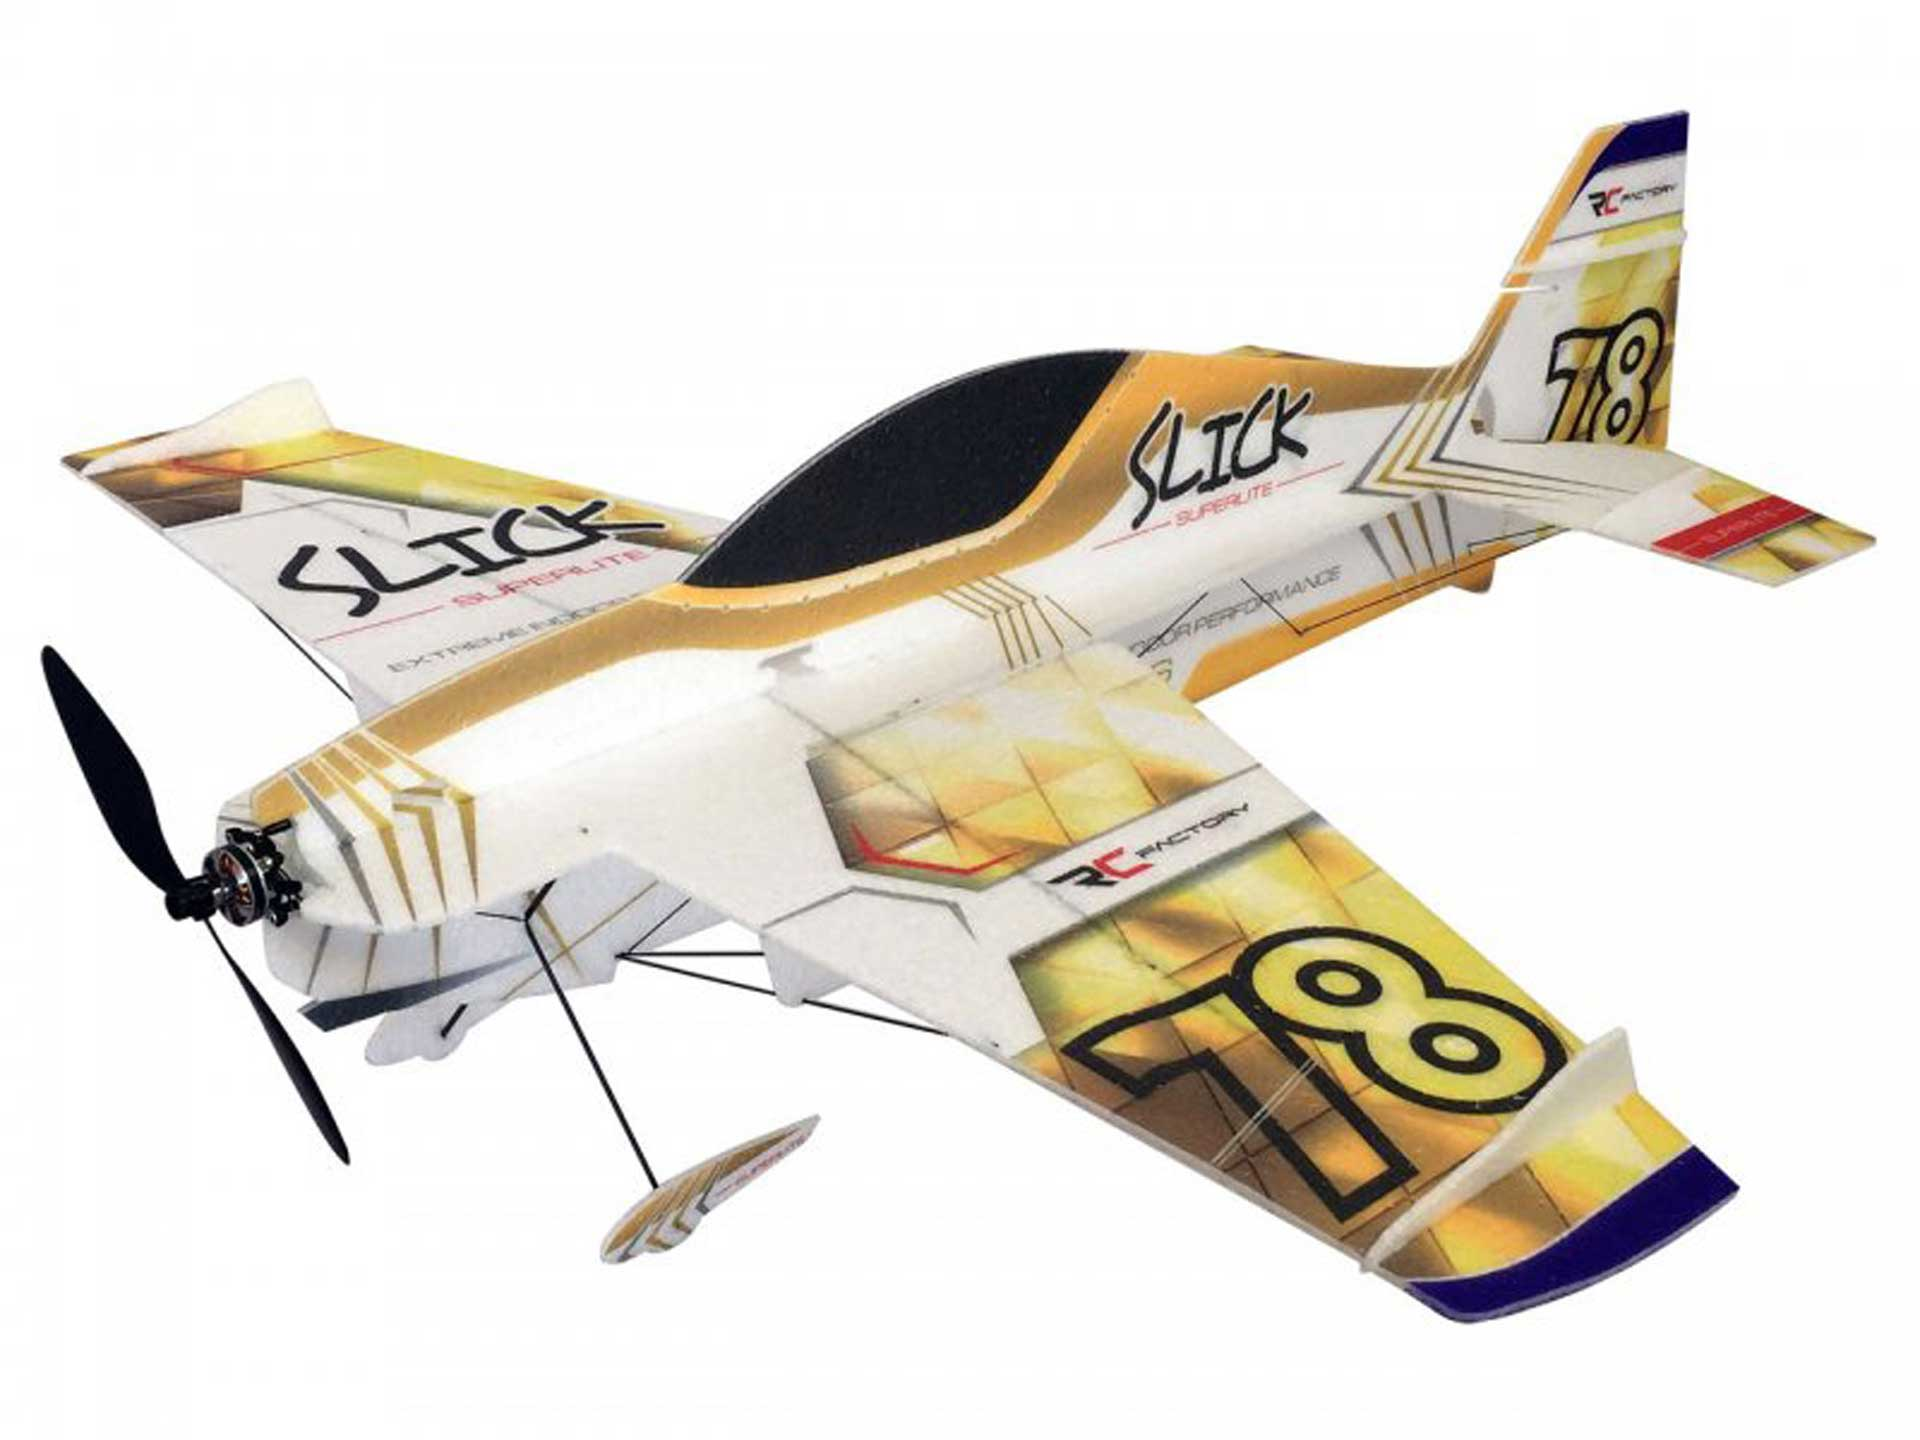 PICHLER SLICK SUPERLITE GOLD COMBO EPP WITH THRUST VECTOR CONTROL, DRIVE AND SERVOS